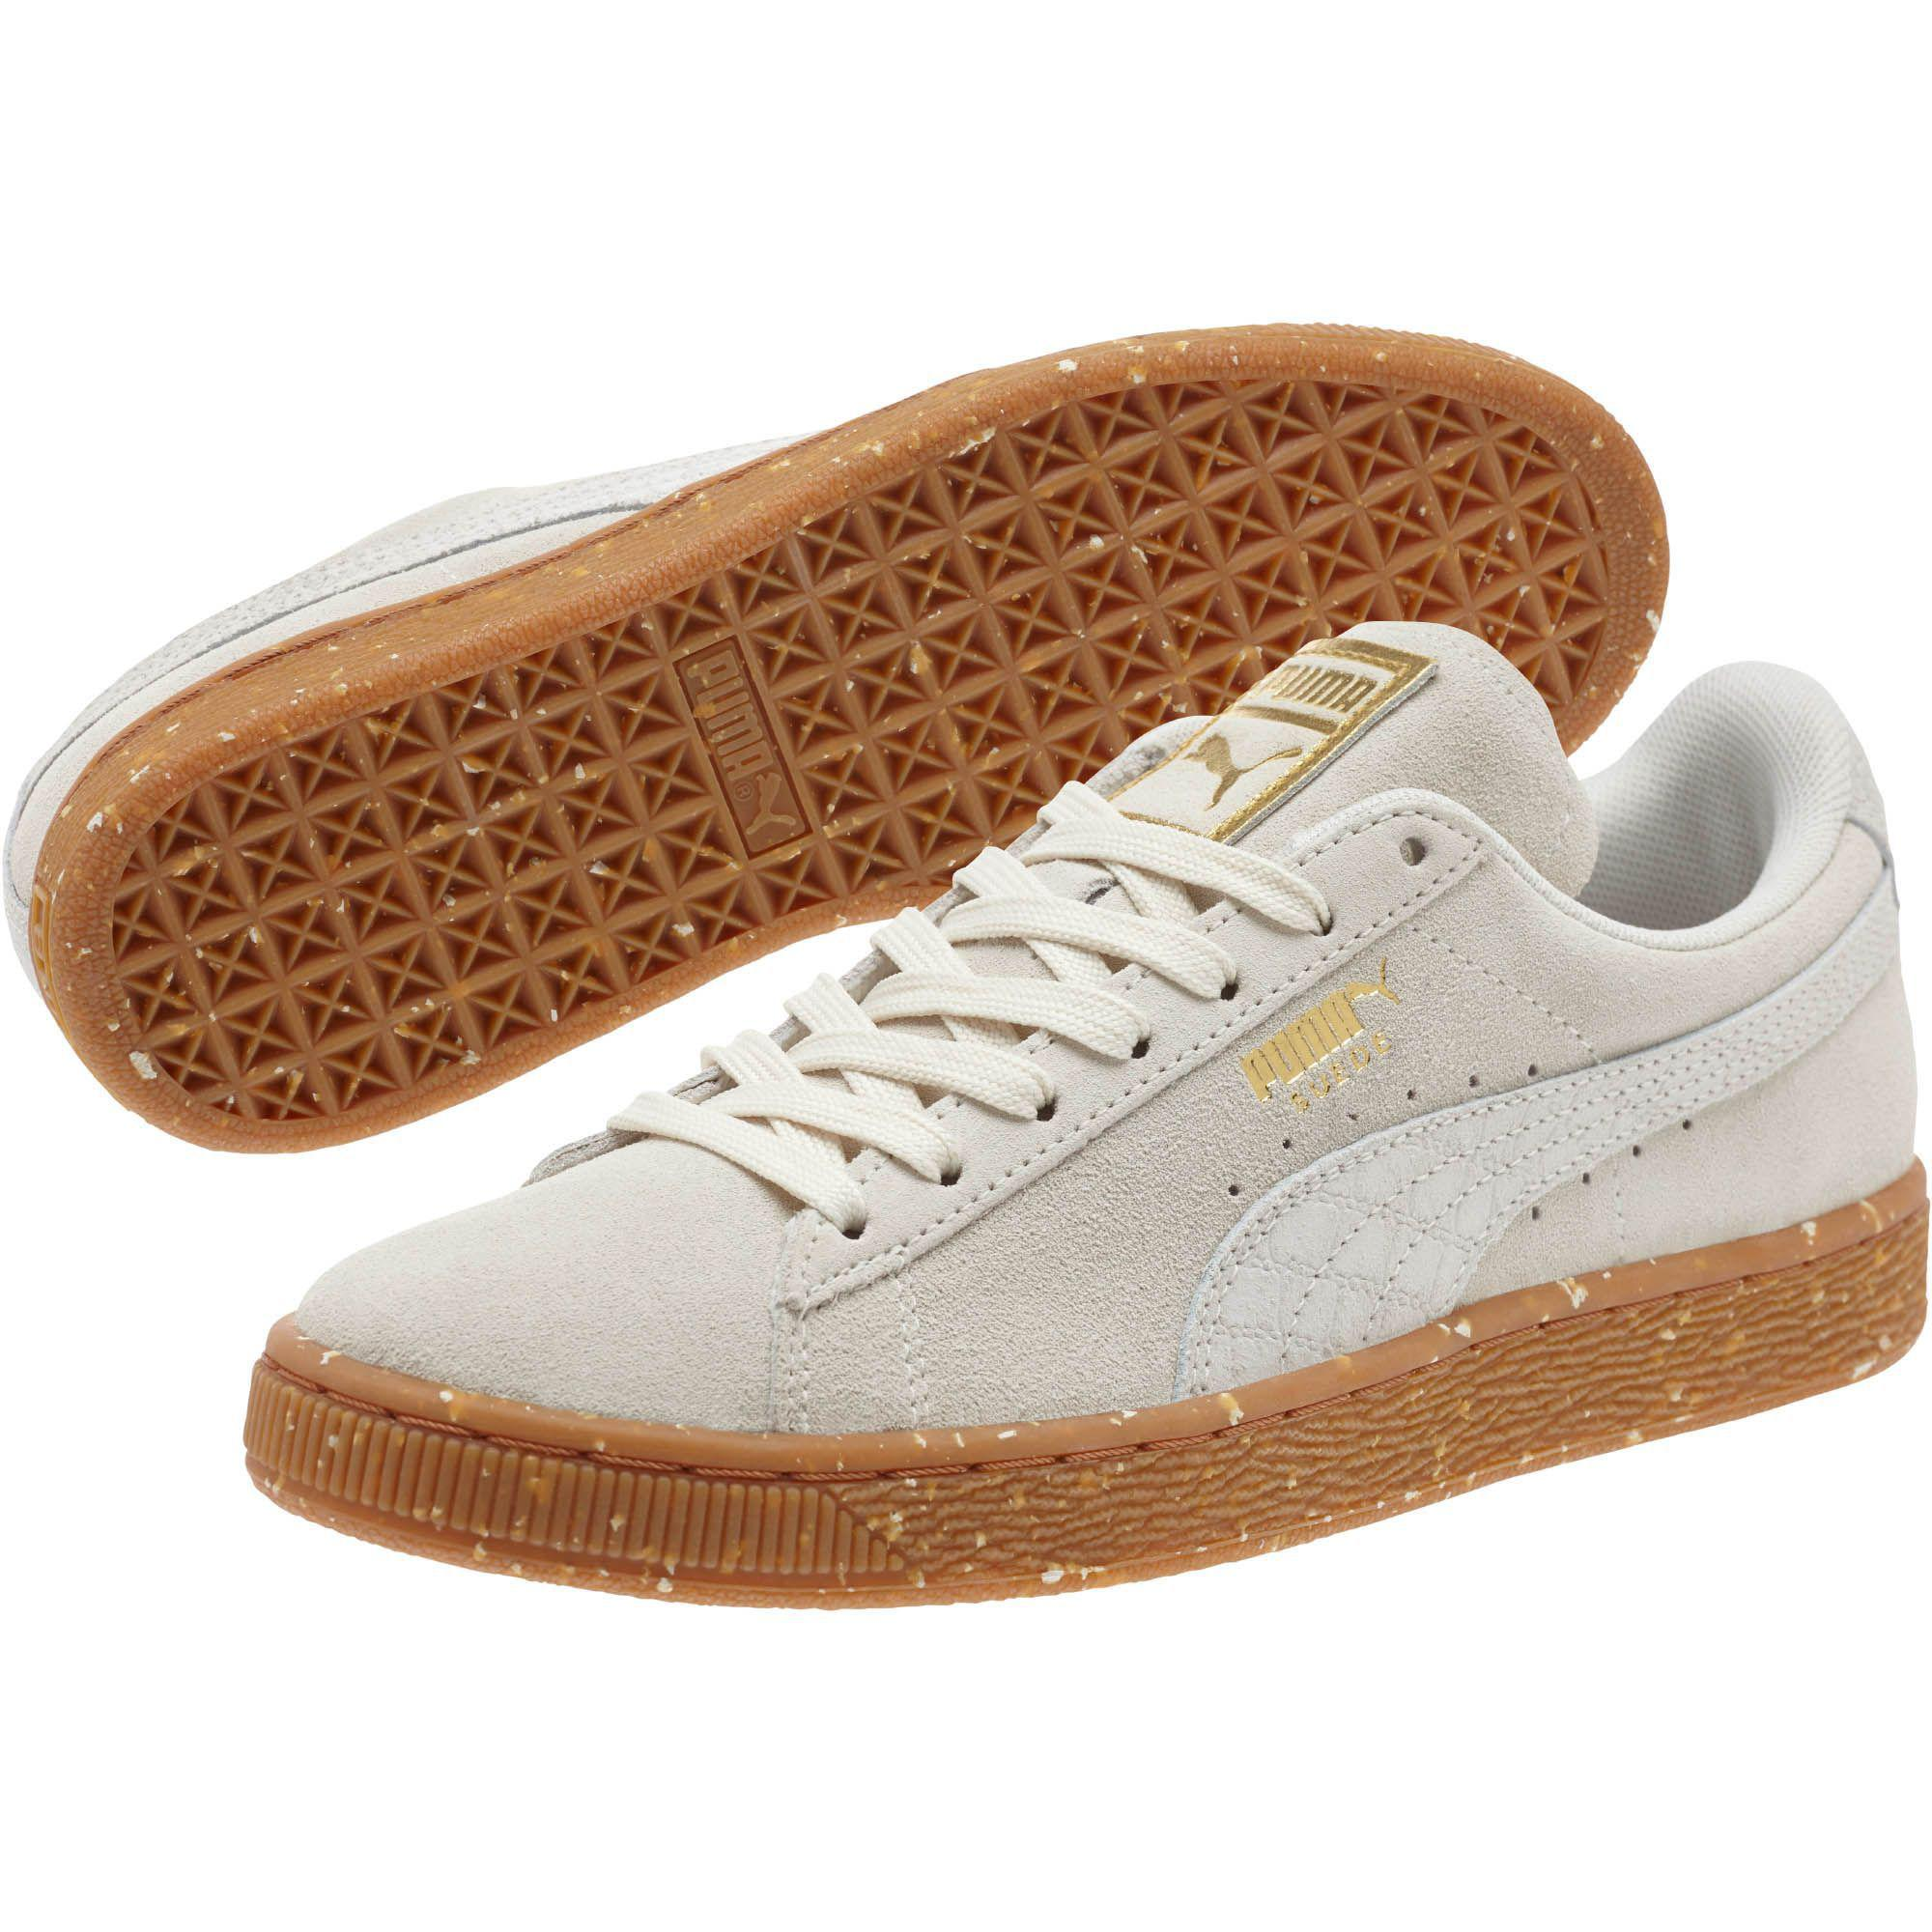 Lyst - PUMA Suede Classic Ft Women s Sneakers in White 28875352d2340